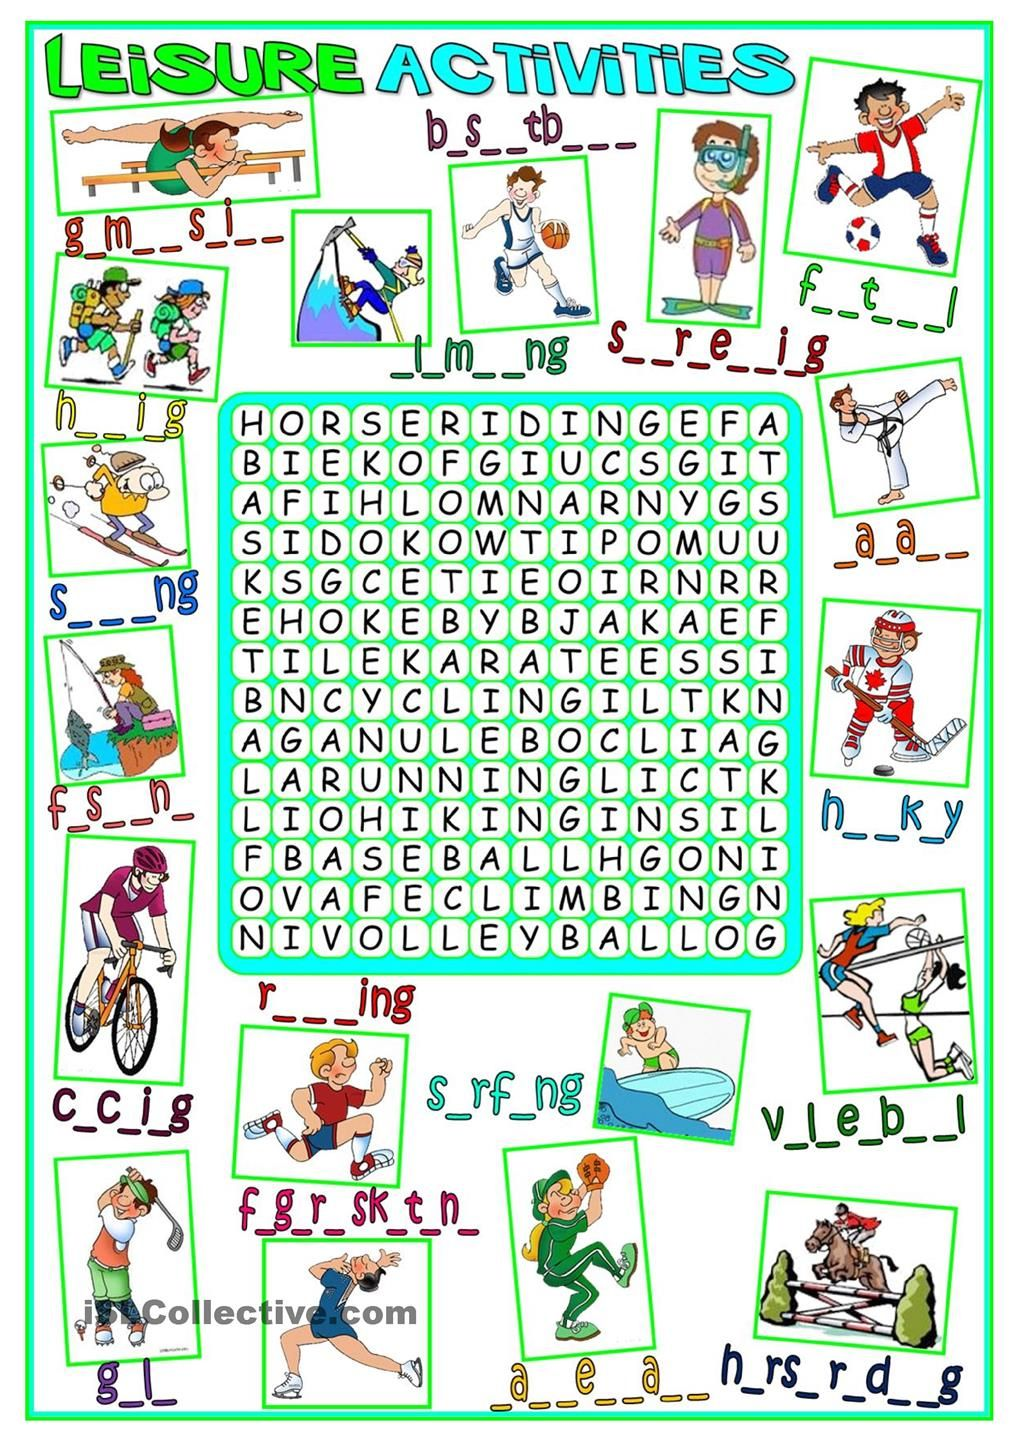 Leisure activities wordsearch English activities, Free